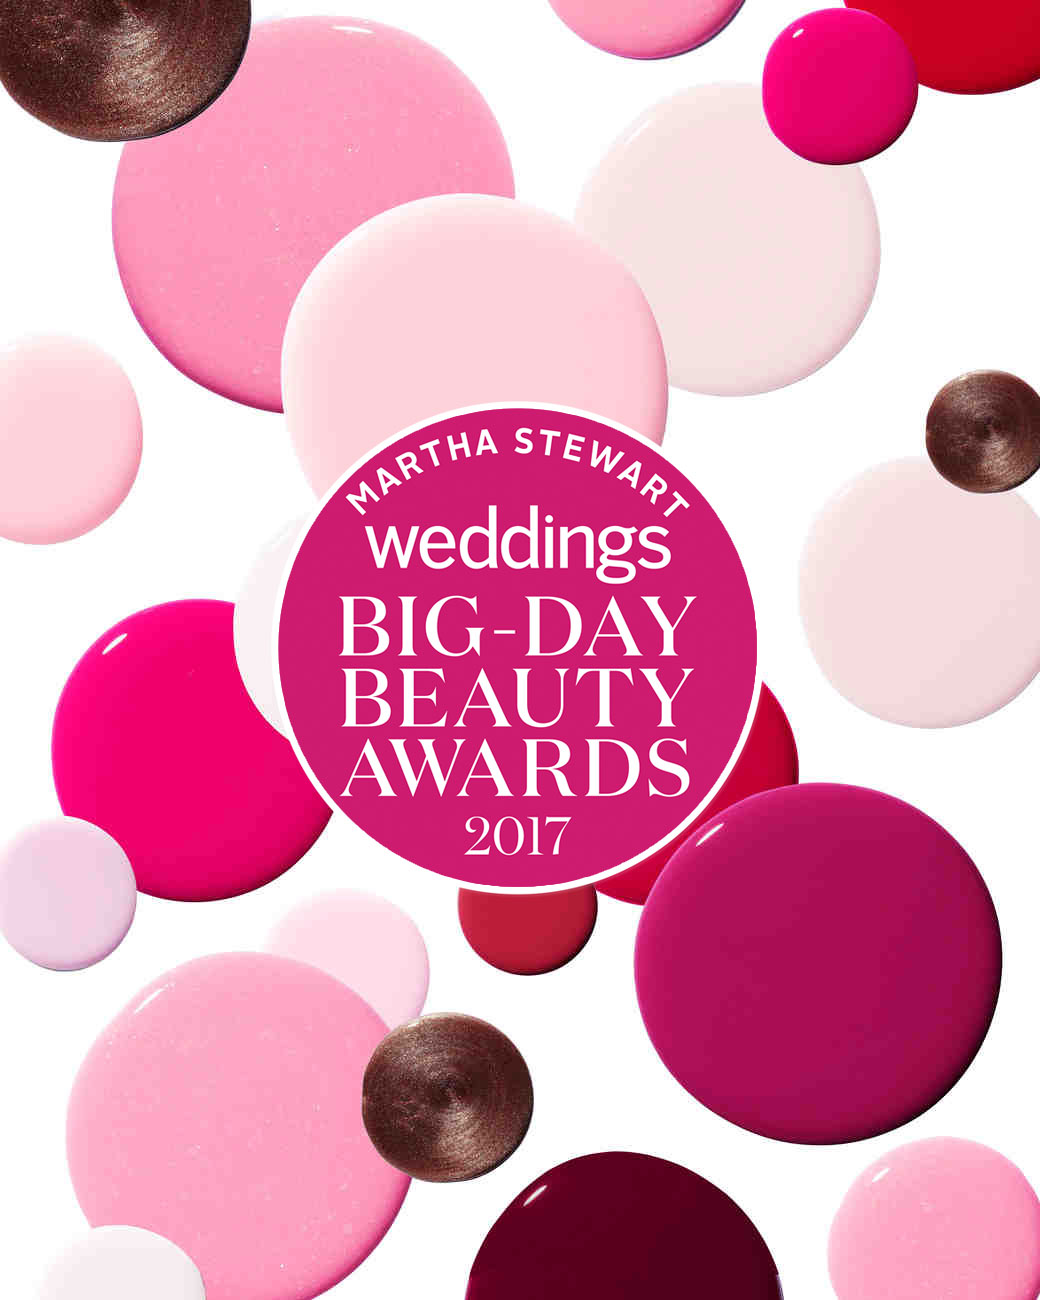 Big-Day Beauty Awards 2017: The 45 Best Beauty Products for Brides